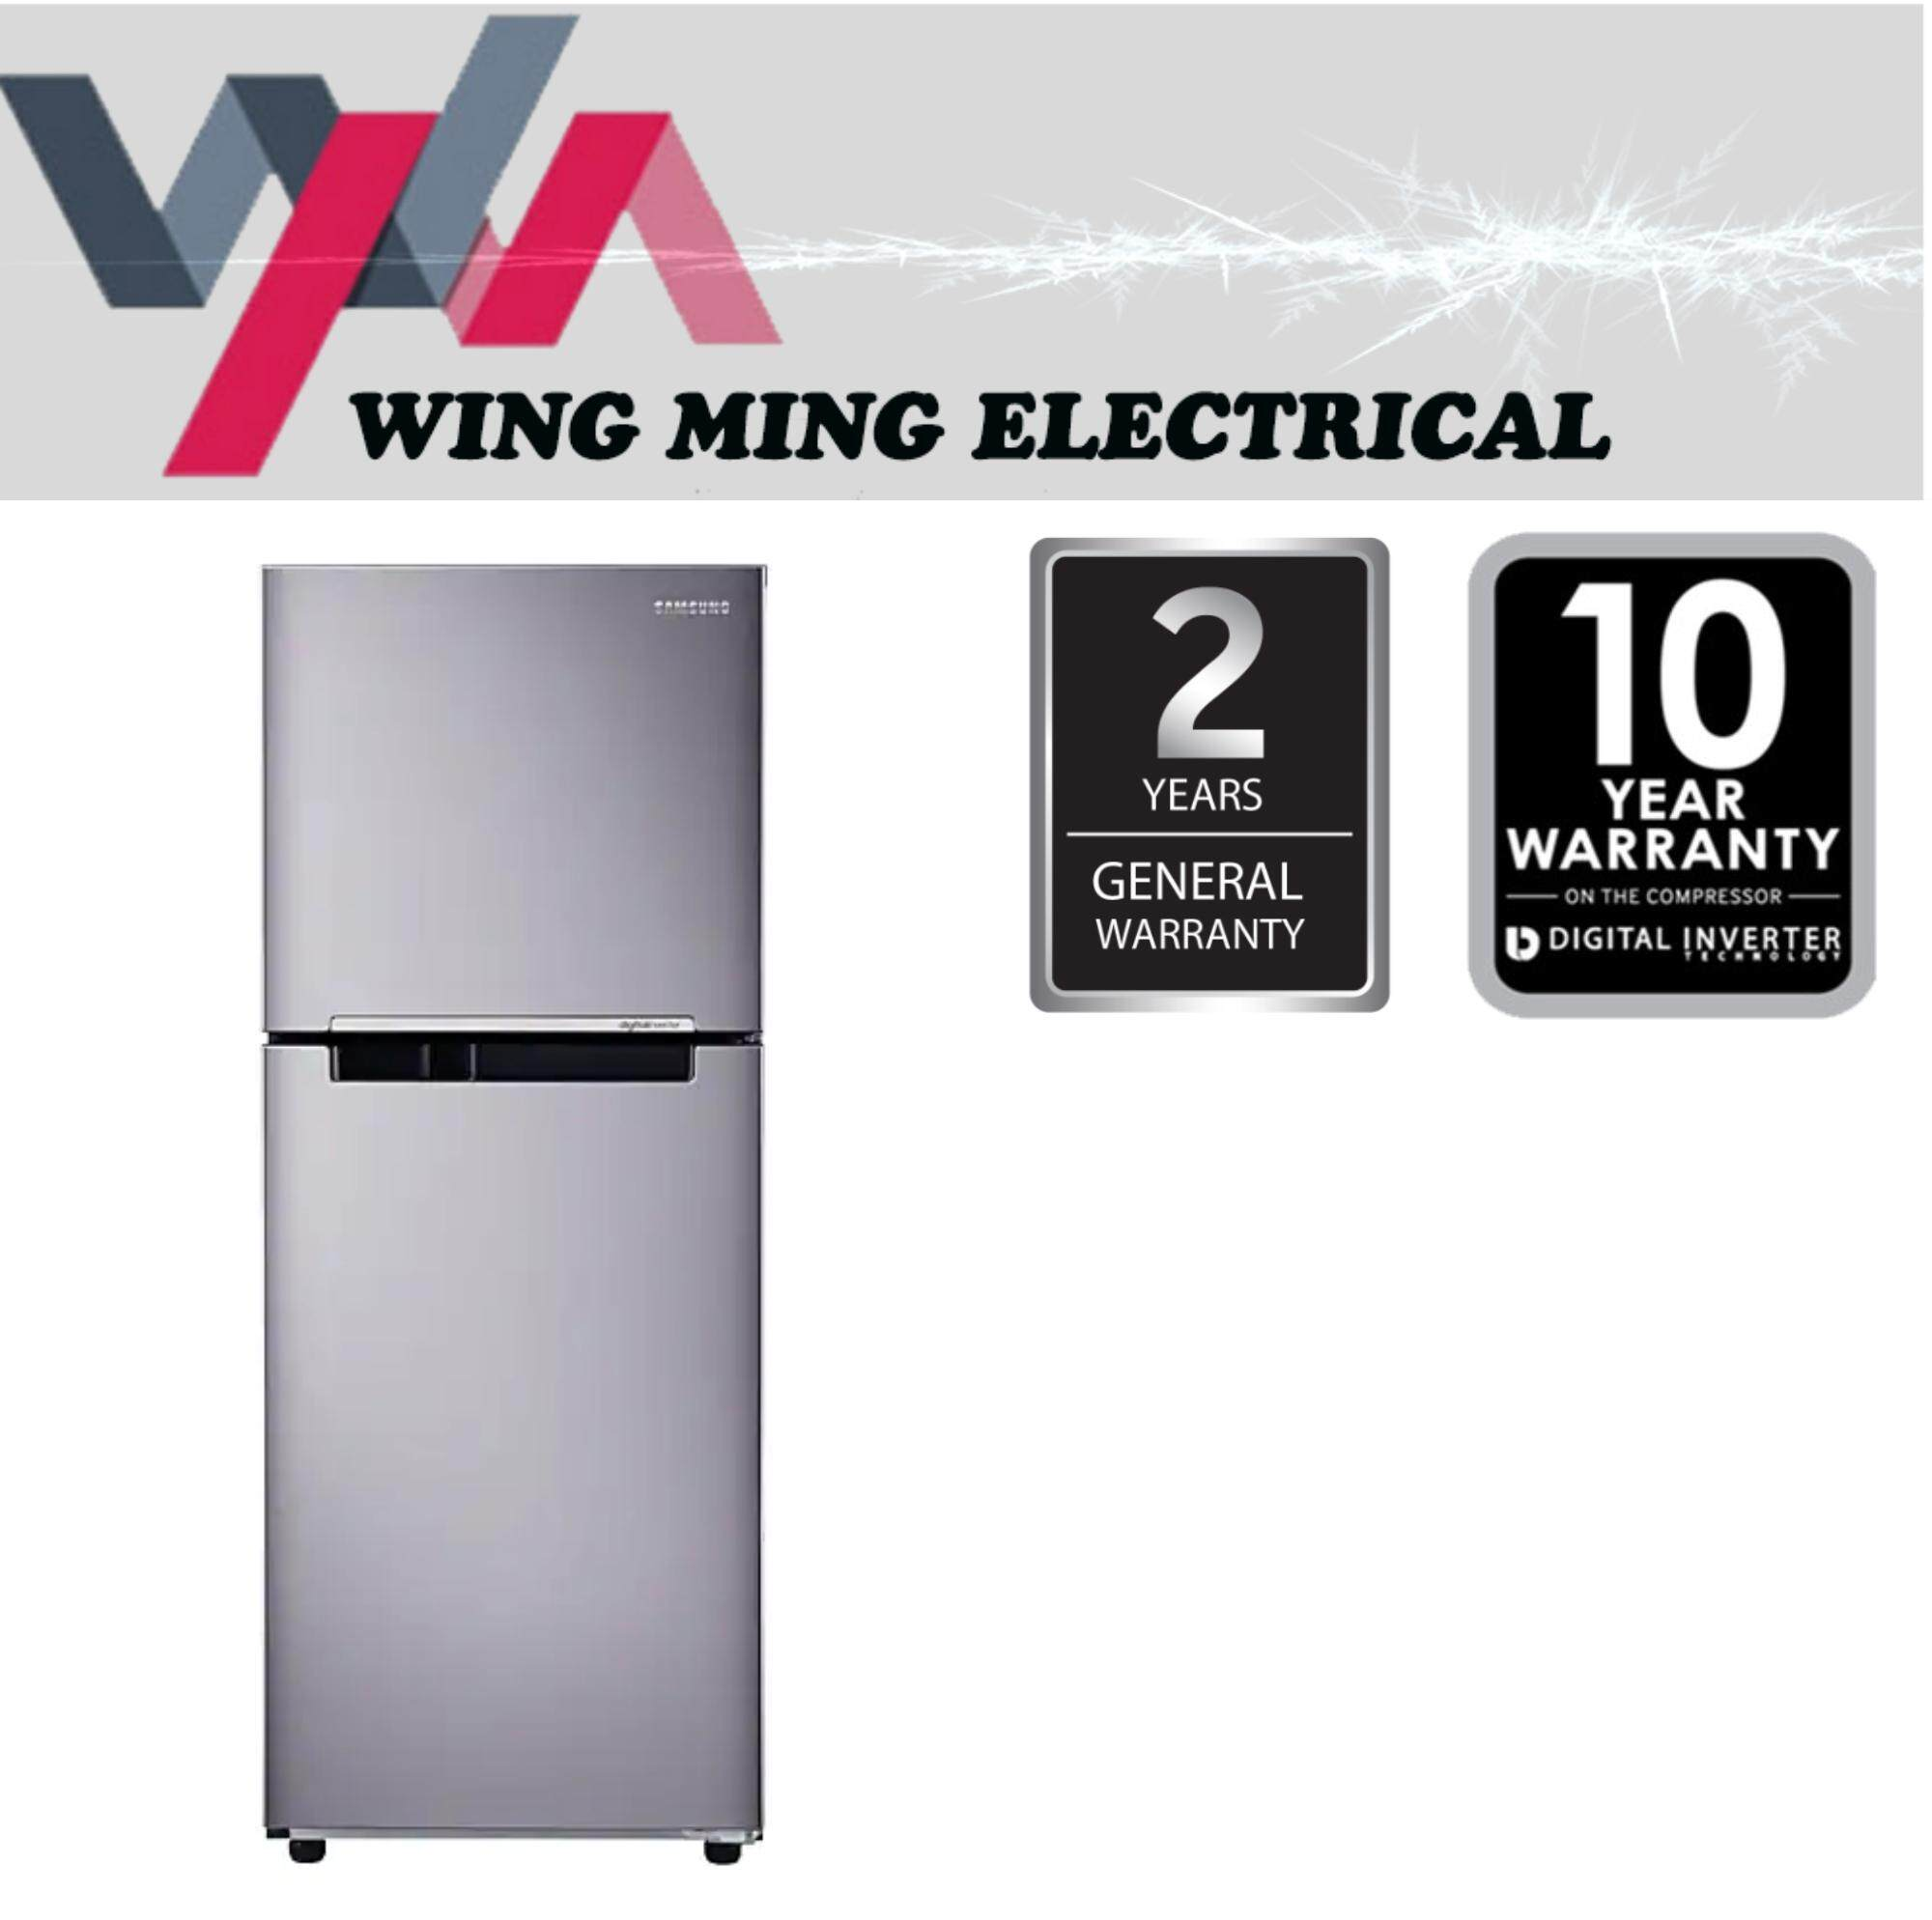 Samsung 203L Top Mount Refrigerator Freezer with Digital Inverter Technology (RT20FARVDSA   RT20FARVDSA/ME) 2 Years General + 10 Years Compressor Official Warranty By Samsung Malaysia